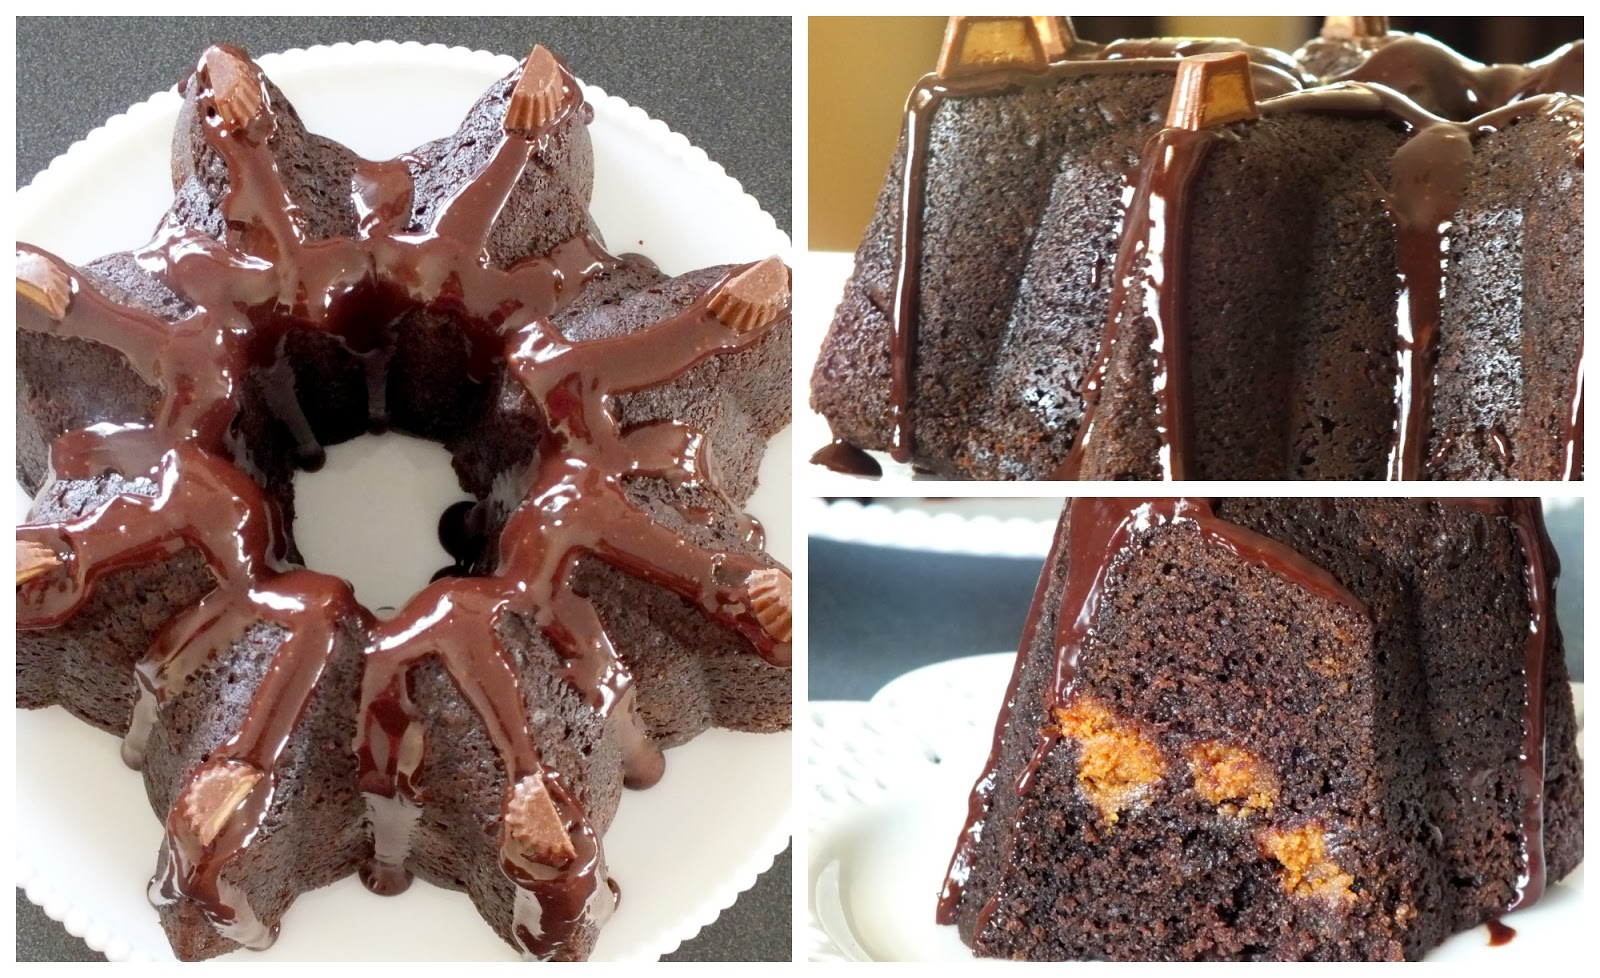 ... Left Are The Crumbs: Reese's Peanut Butter Cup Bundt Cake #BundtaMonth